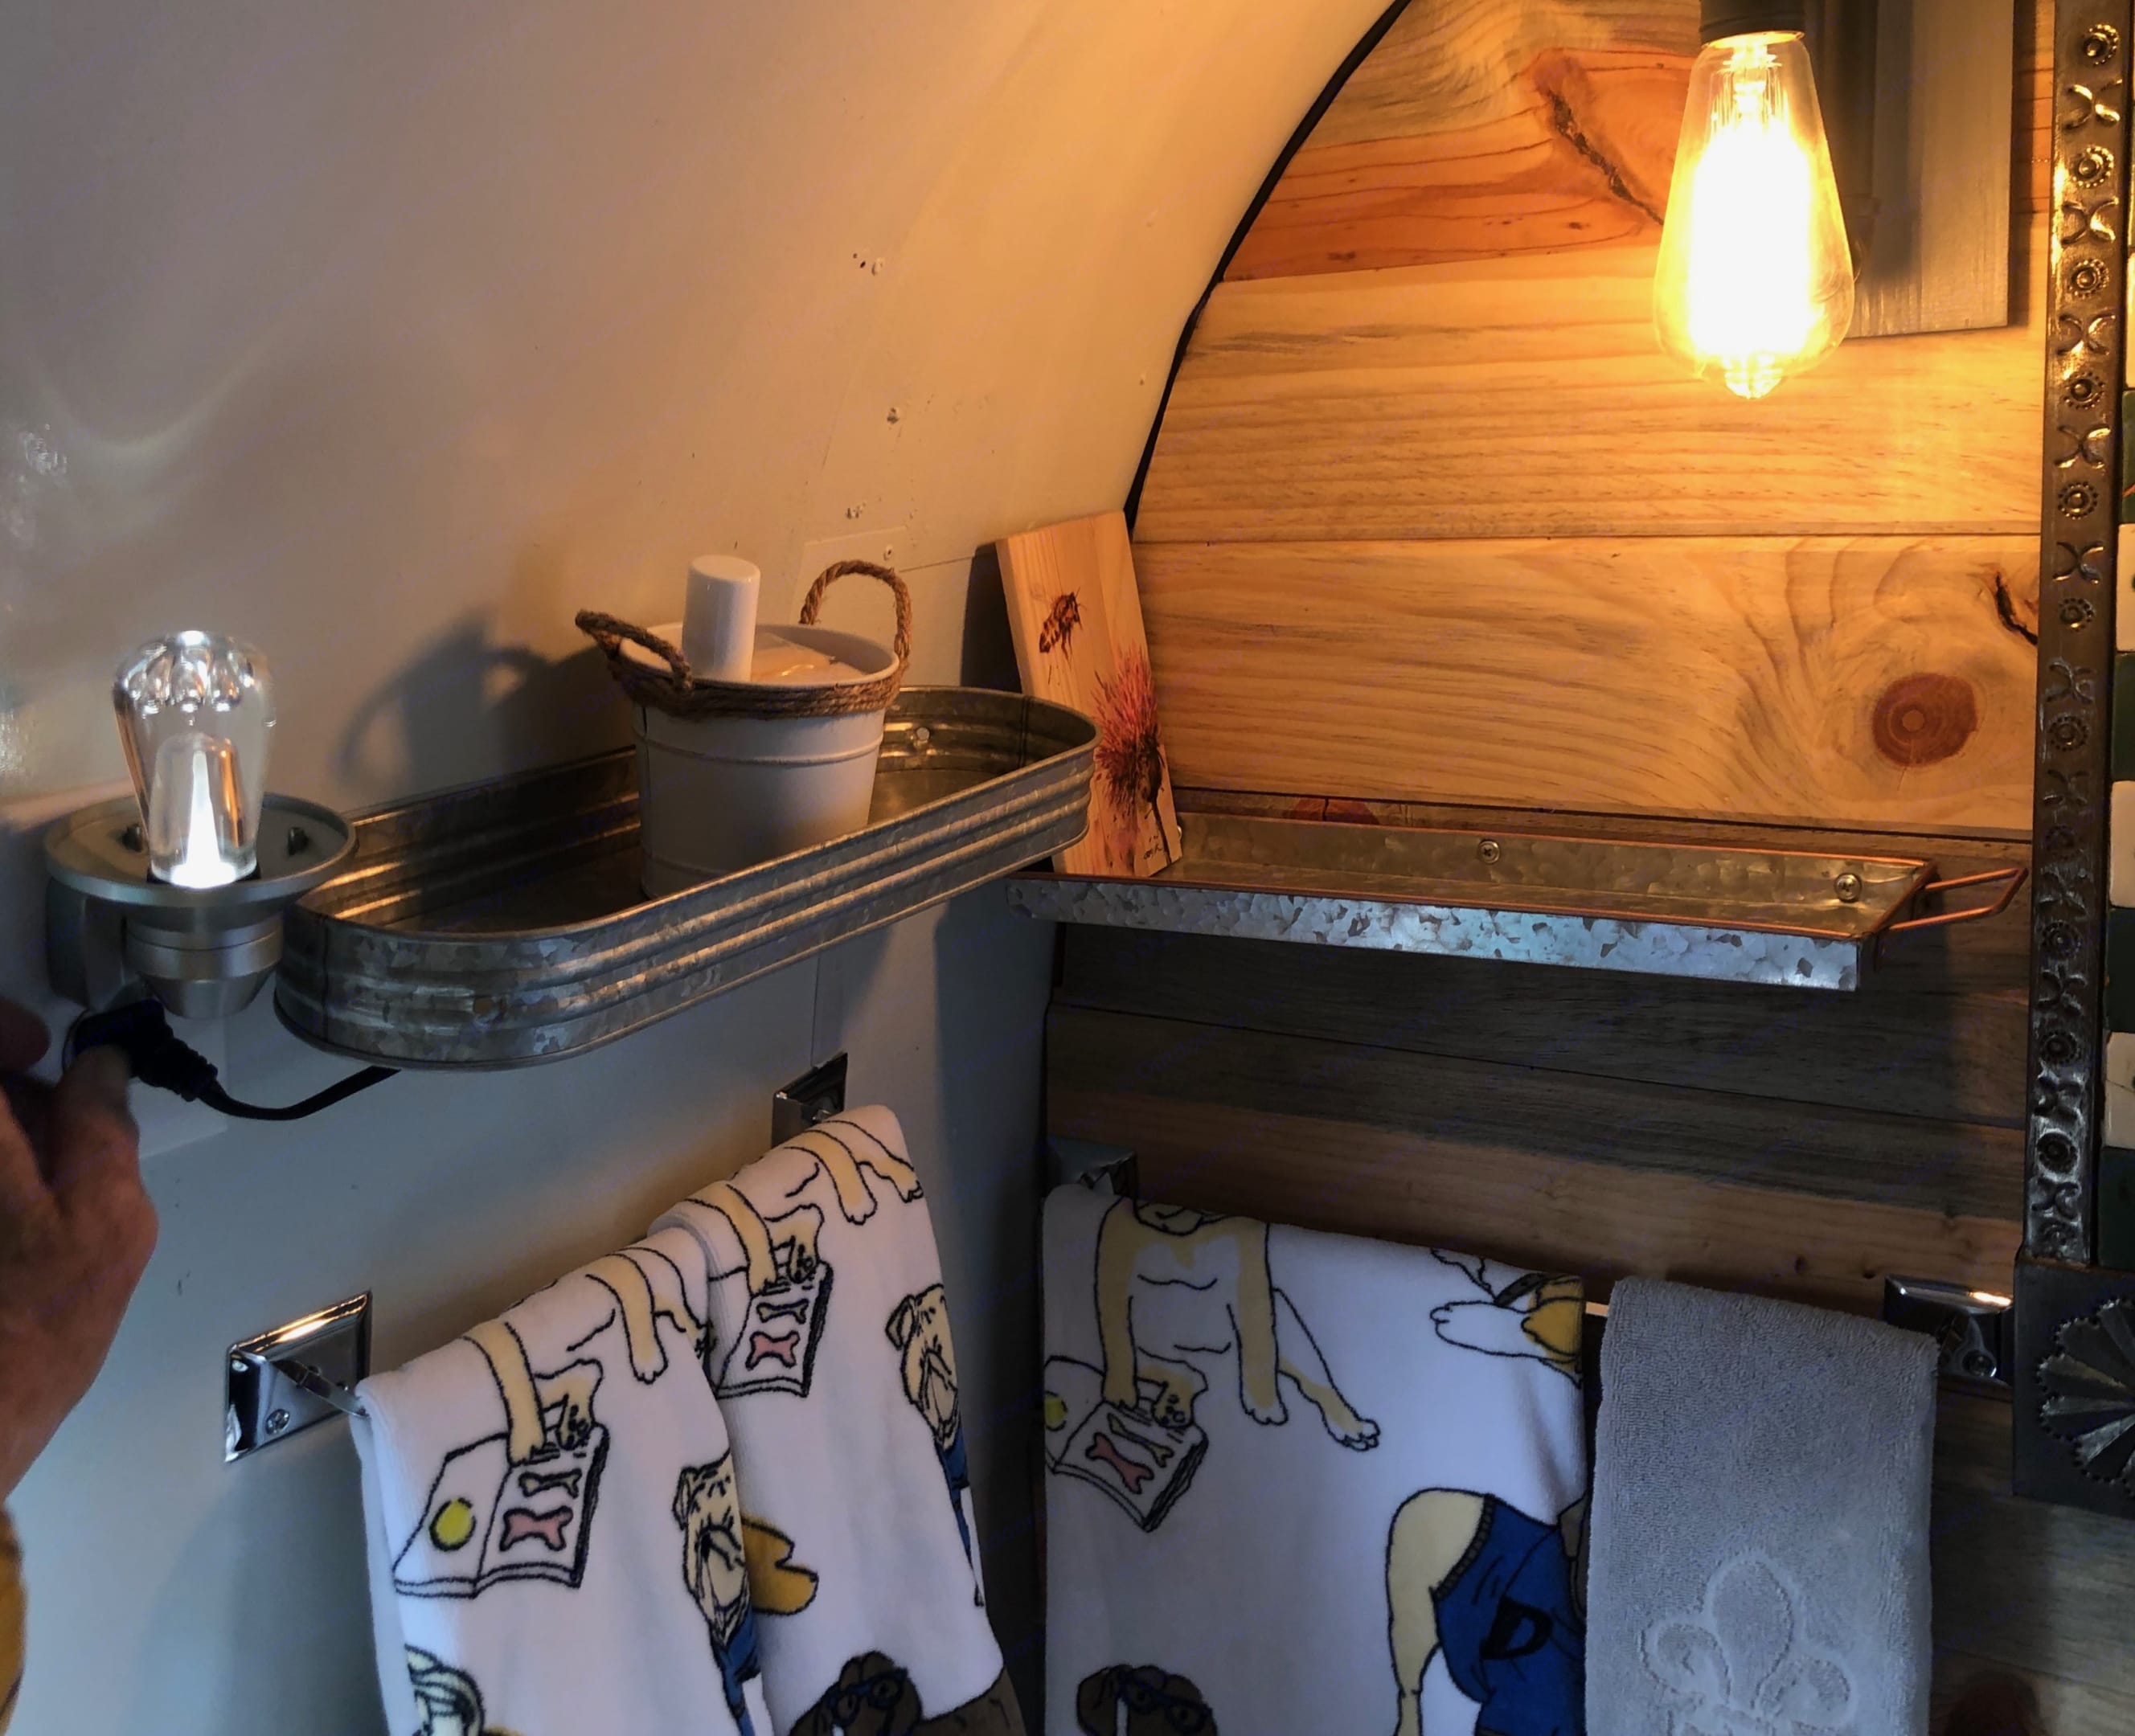 Beautiful stainless bath with shower, soaps & amenities. Airstream Land Yacht 1977